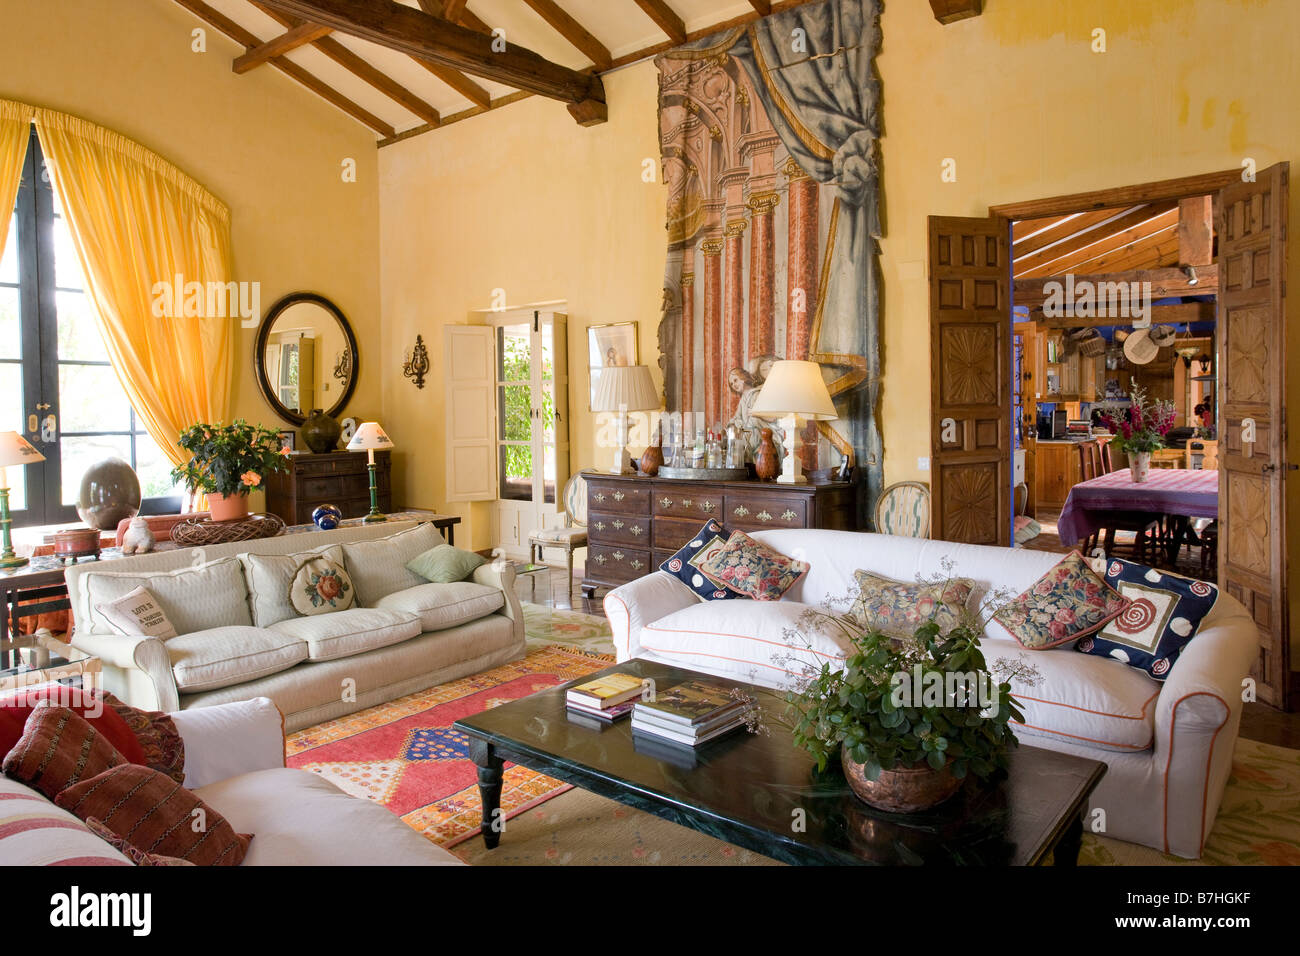 Large White Sofas In Yellow Spanish Living Room With